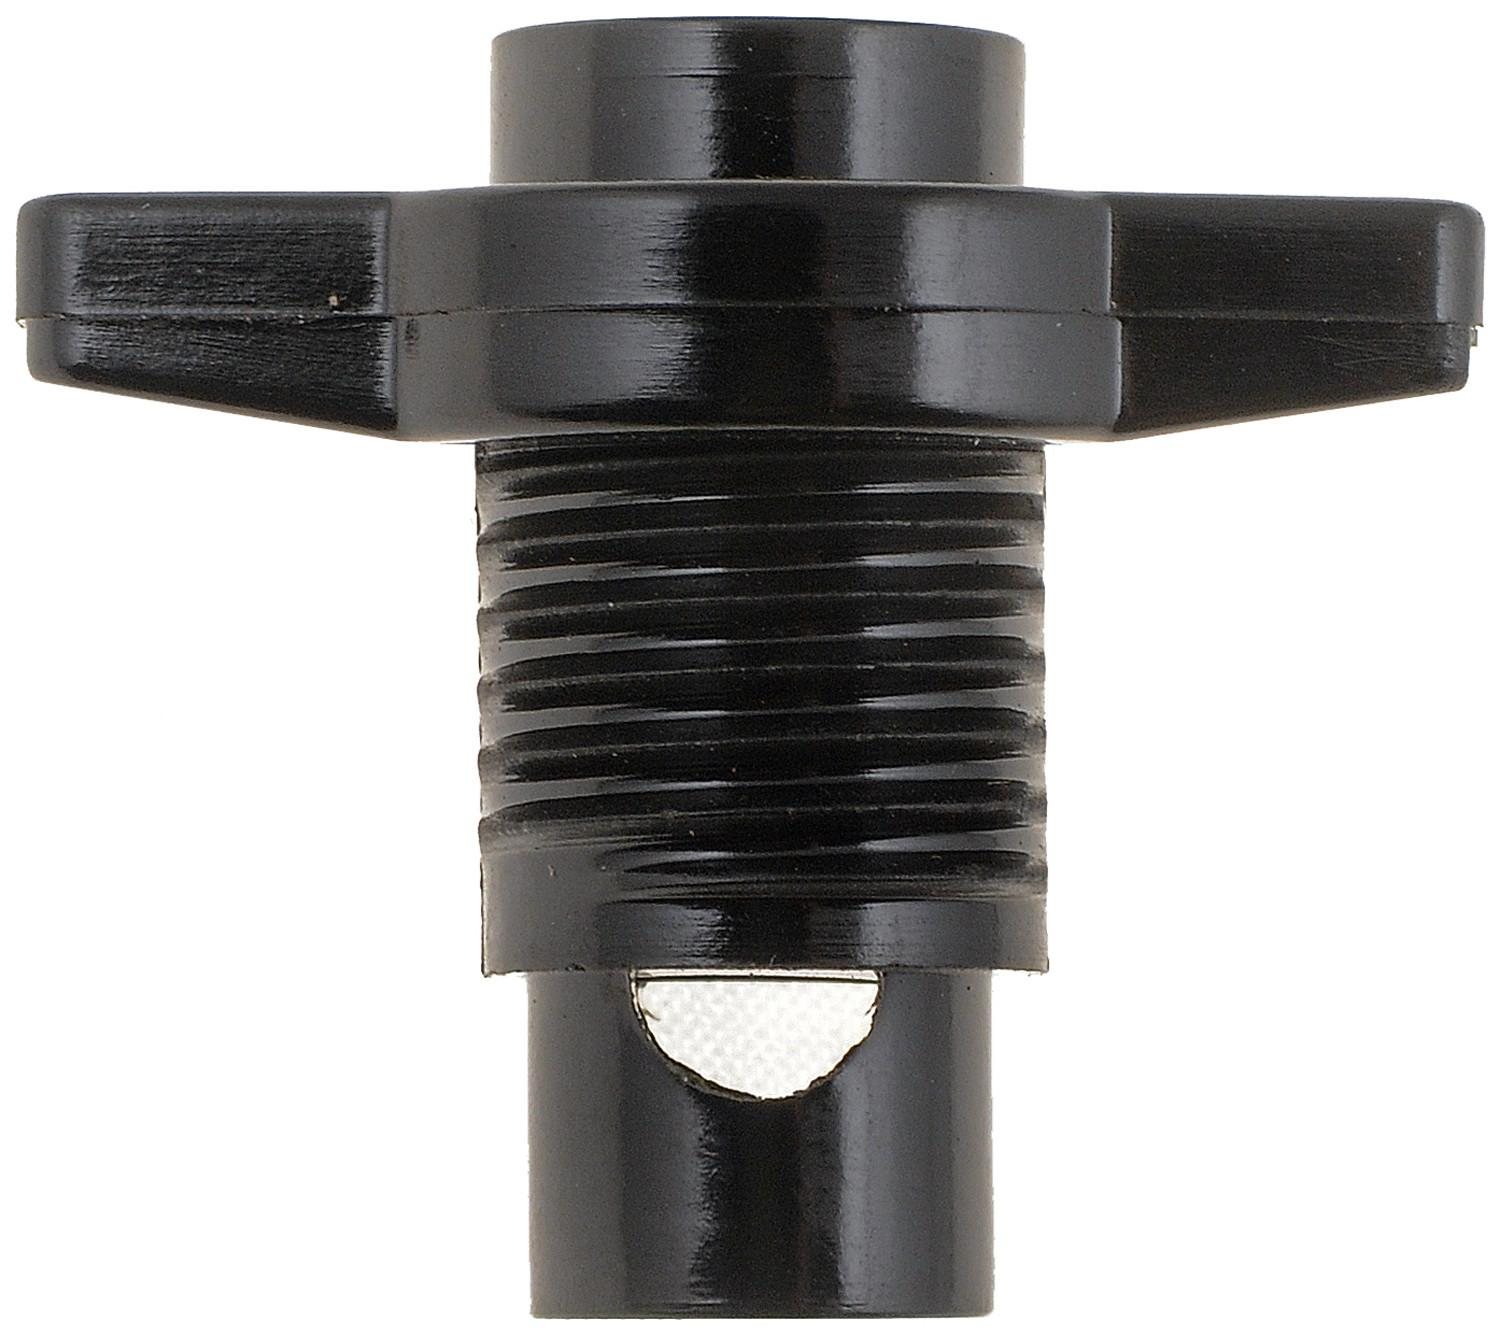 DORMAN - AUTOGRADE - Radiator Drain Petcock - DOC 258